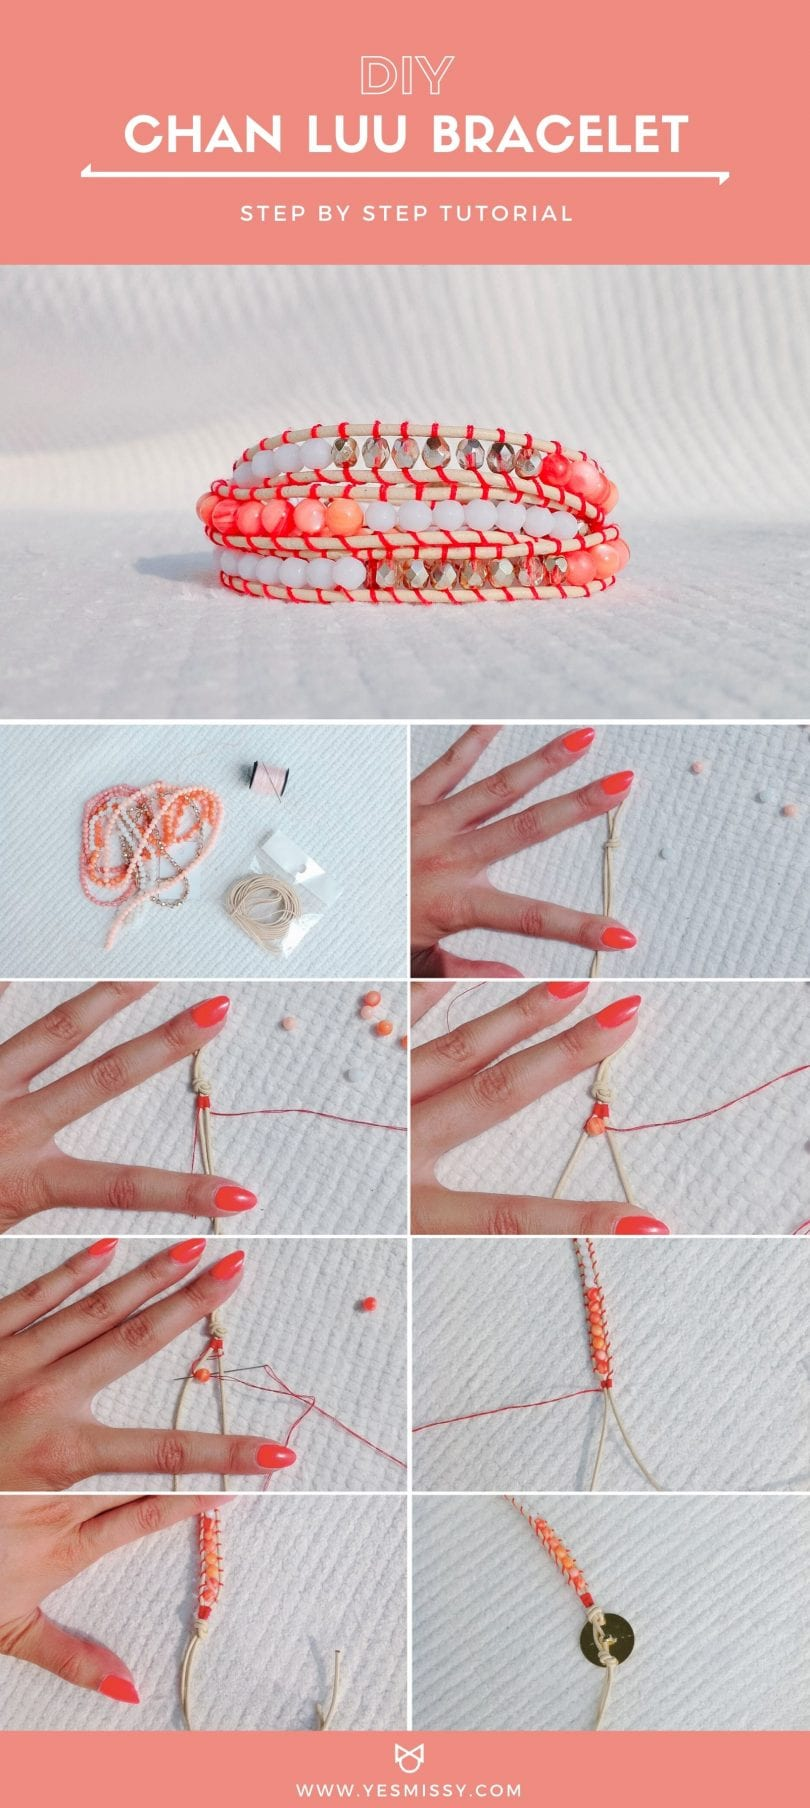 DIY Chan Luu bracelet tutorial with step-by-step instructions using leather cord, glass beads, and thread.. by YESMISSY